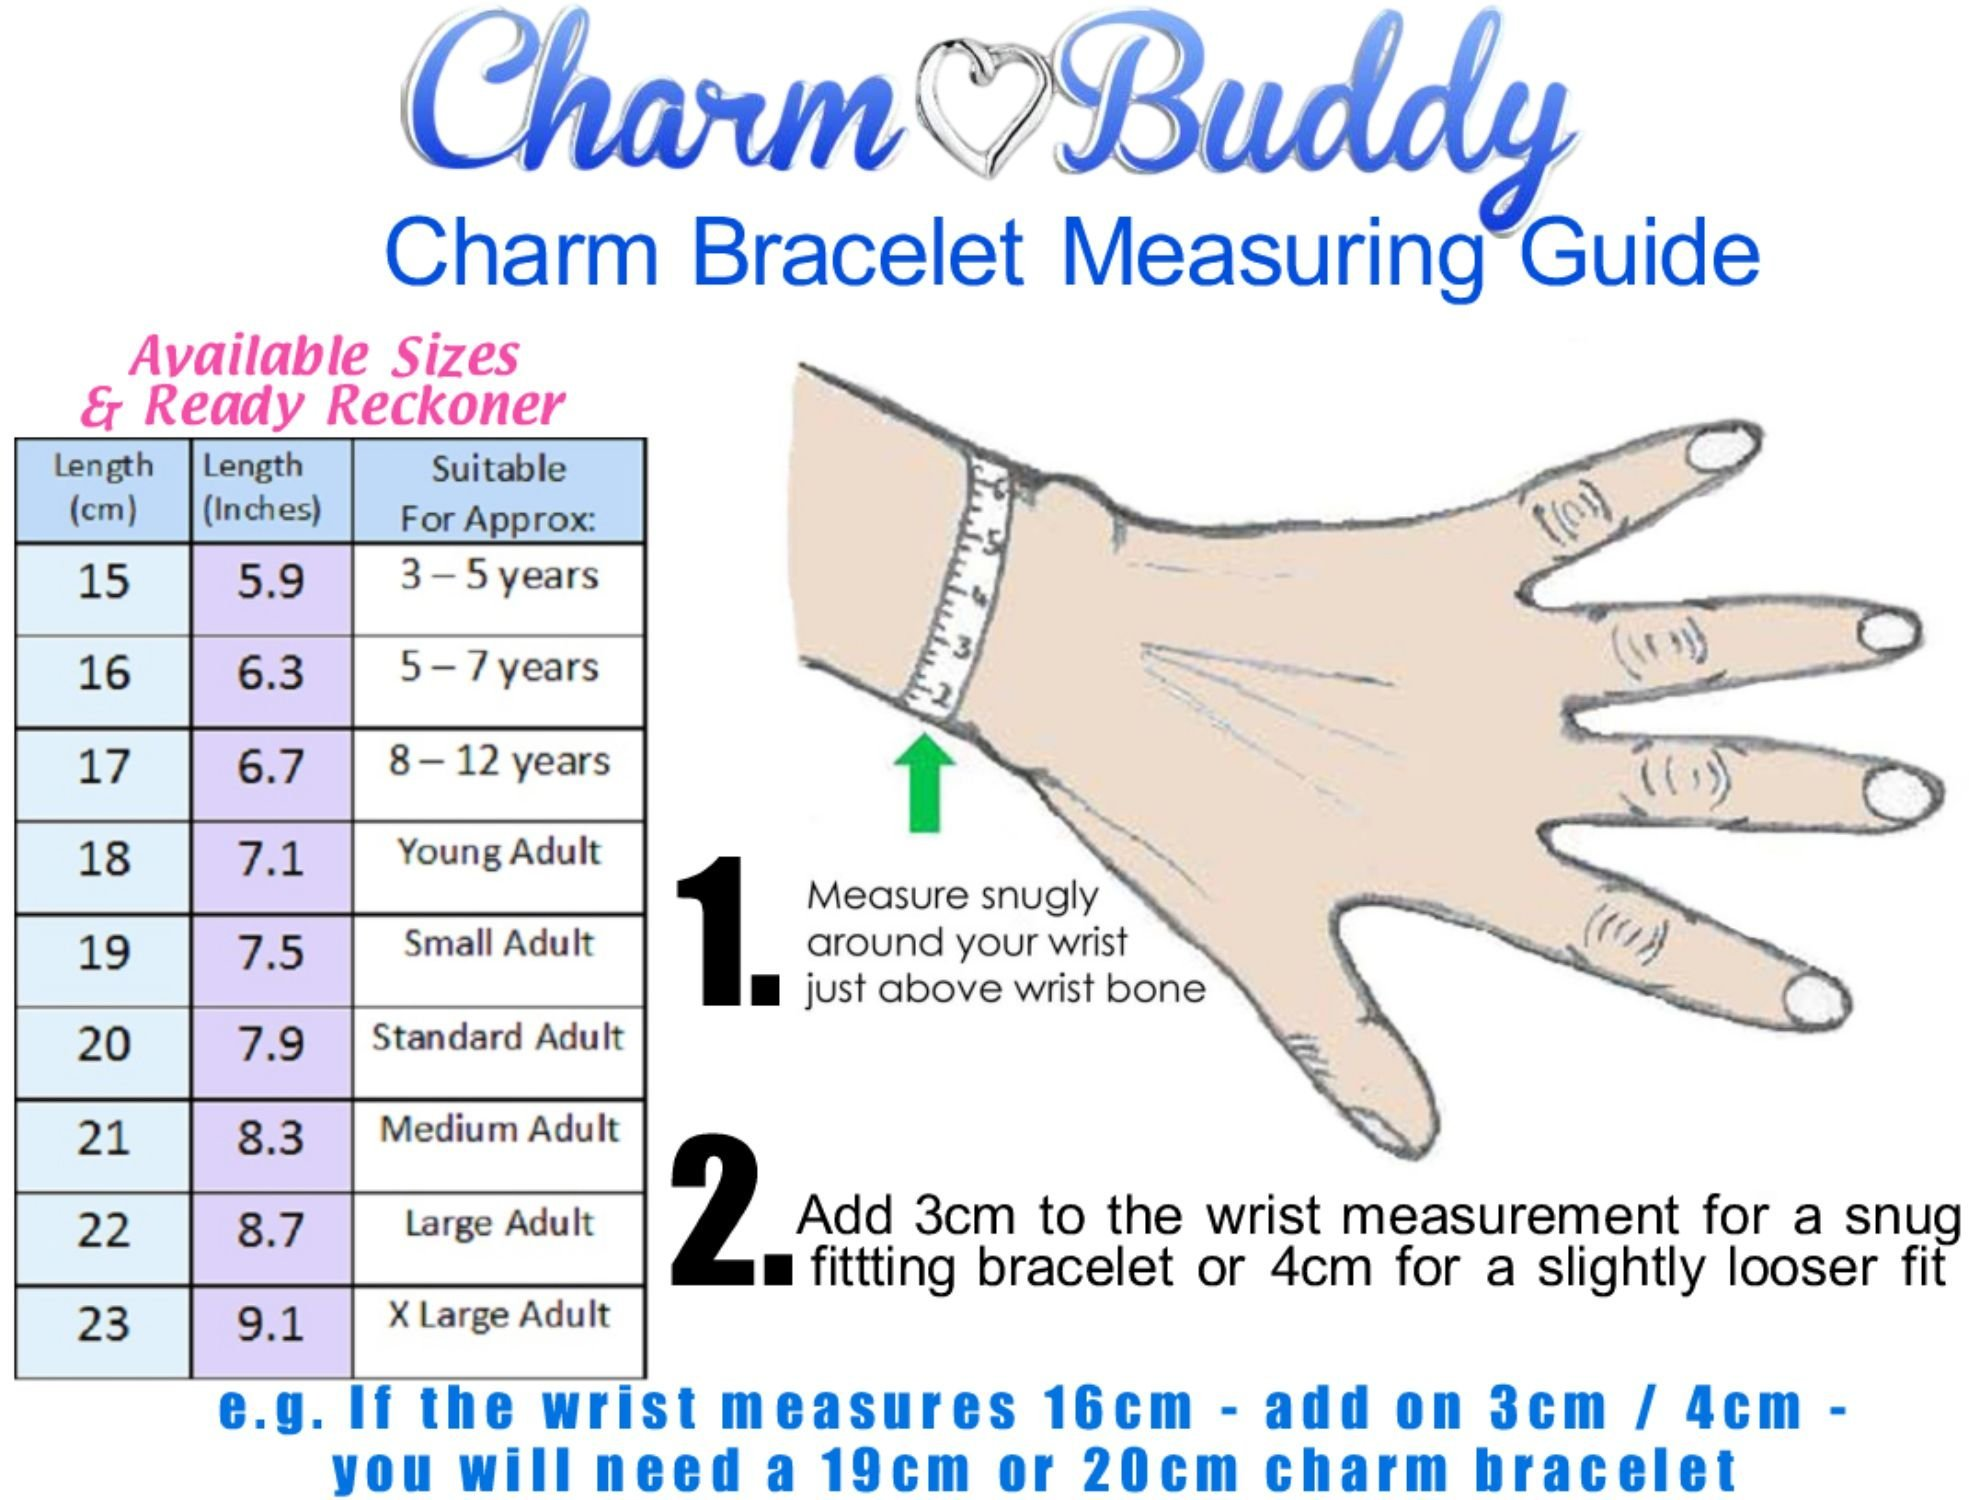 Charm Buddy Special Daughter Pink Silver Crystal Good Luck Pandora Style Bracelet With Charms Gift Box by Charm Buddy (Image #4)